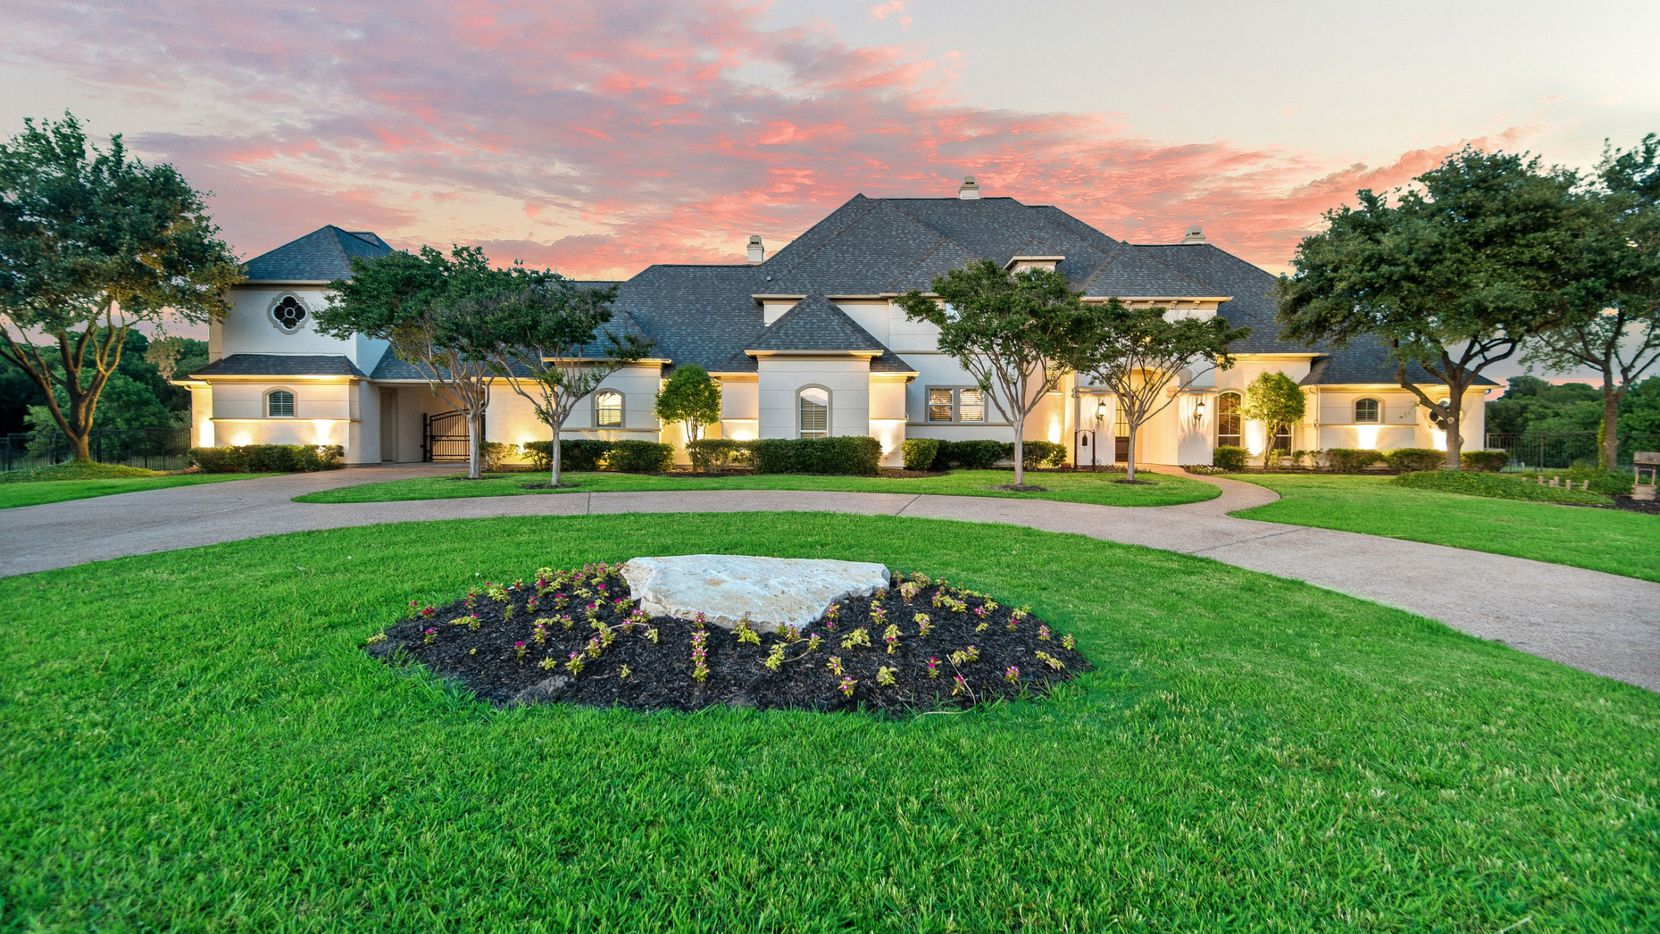 The estate at 539 Ridge Point Drive in Heath offers a pond and peninsula, a saltwater pool and proximity to Lake Ray Hubbard. It is listed at $1.3 million.